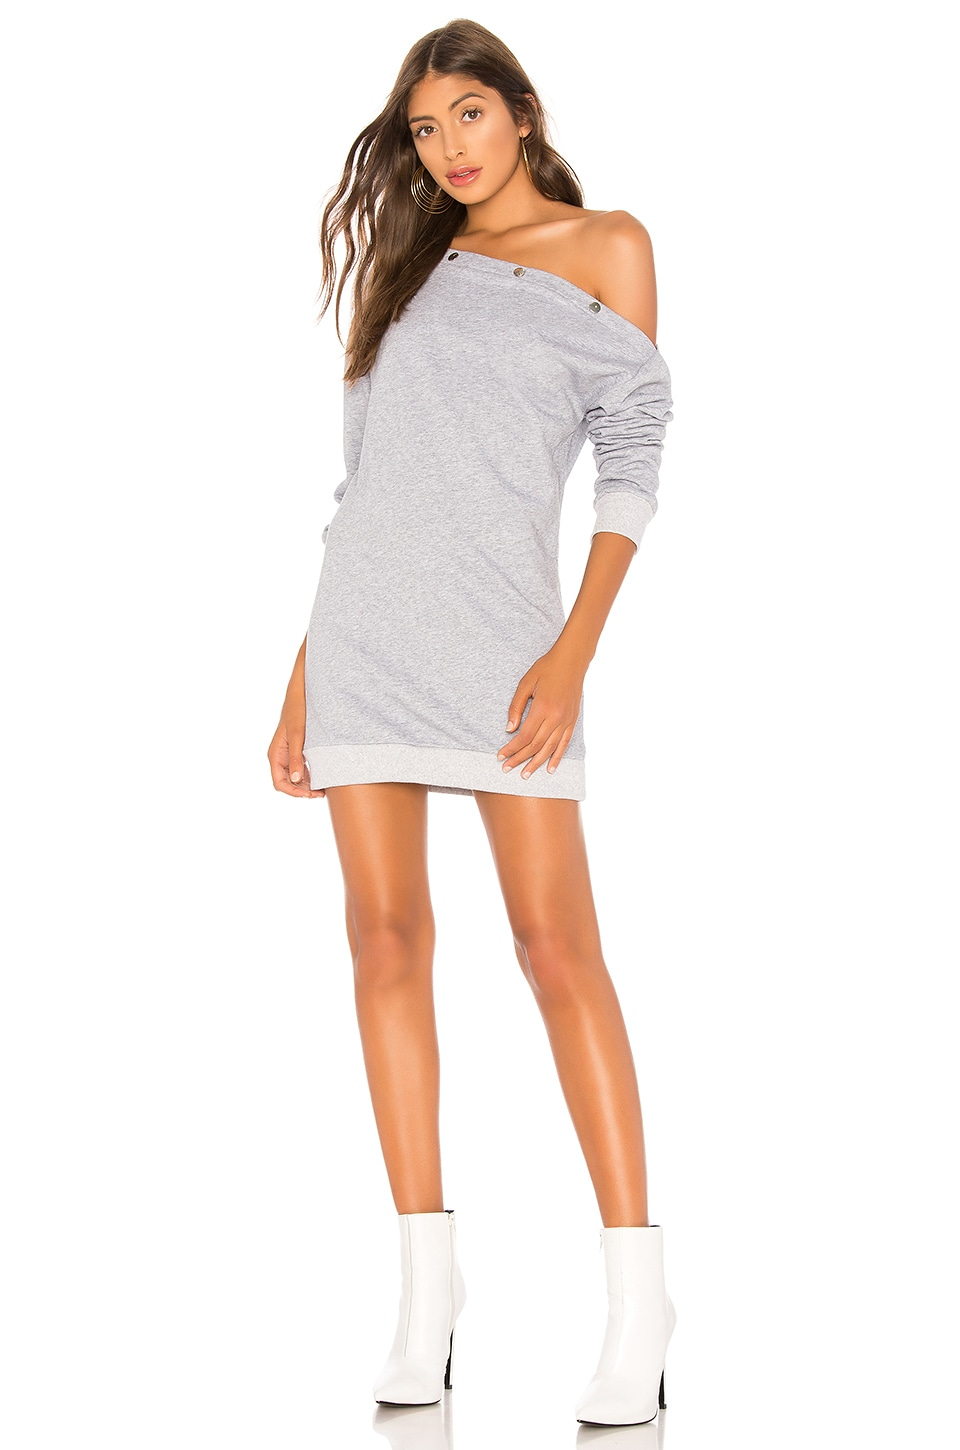 About Us Aubree Sweatshirt Dress in Heather Grey